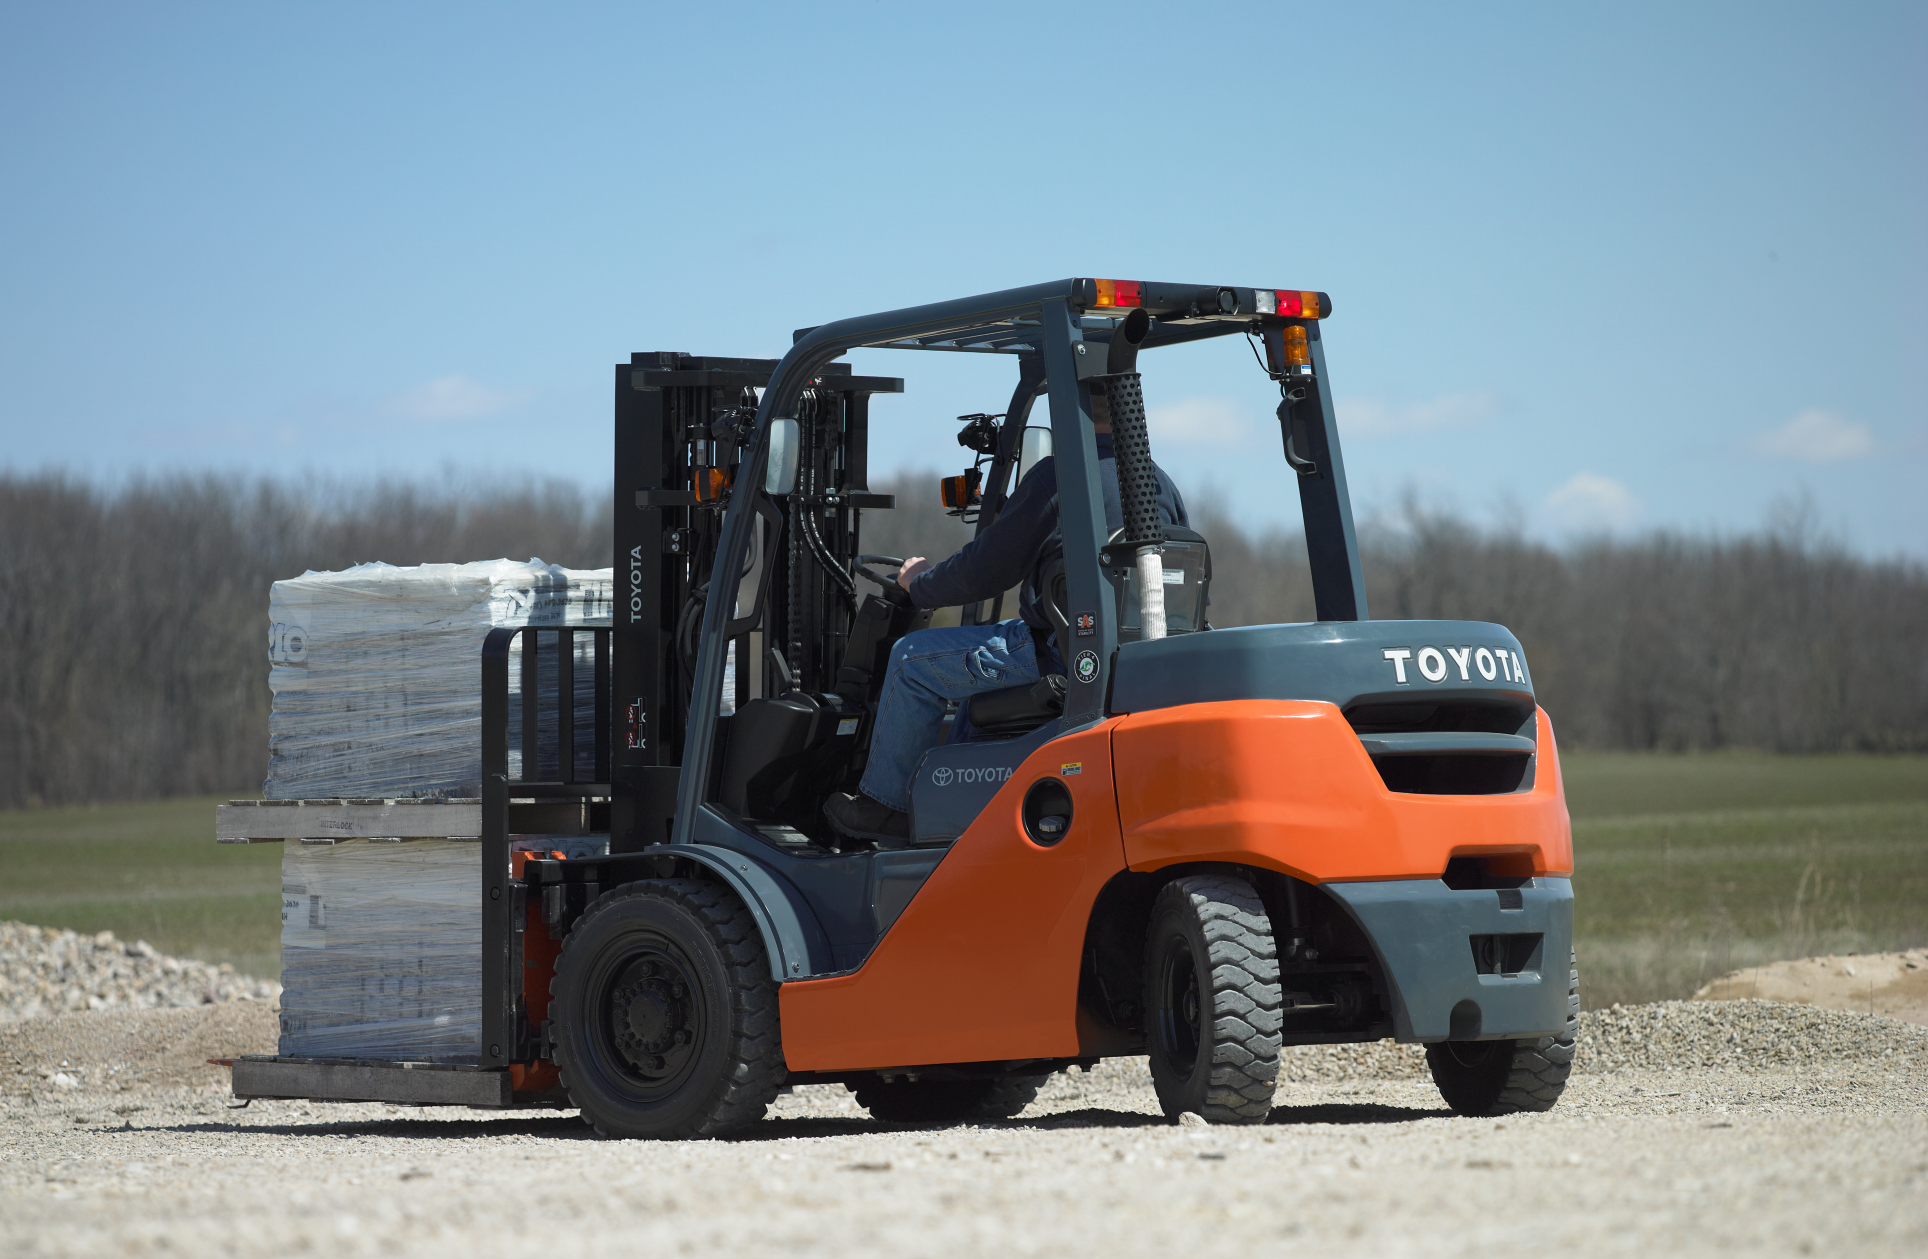 Mid IC Pneumatic Forklift for outdoor use.